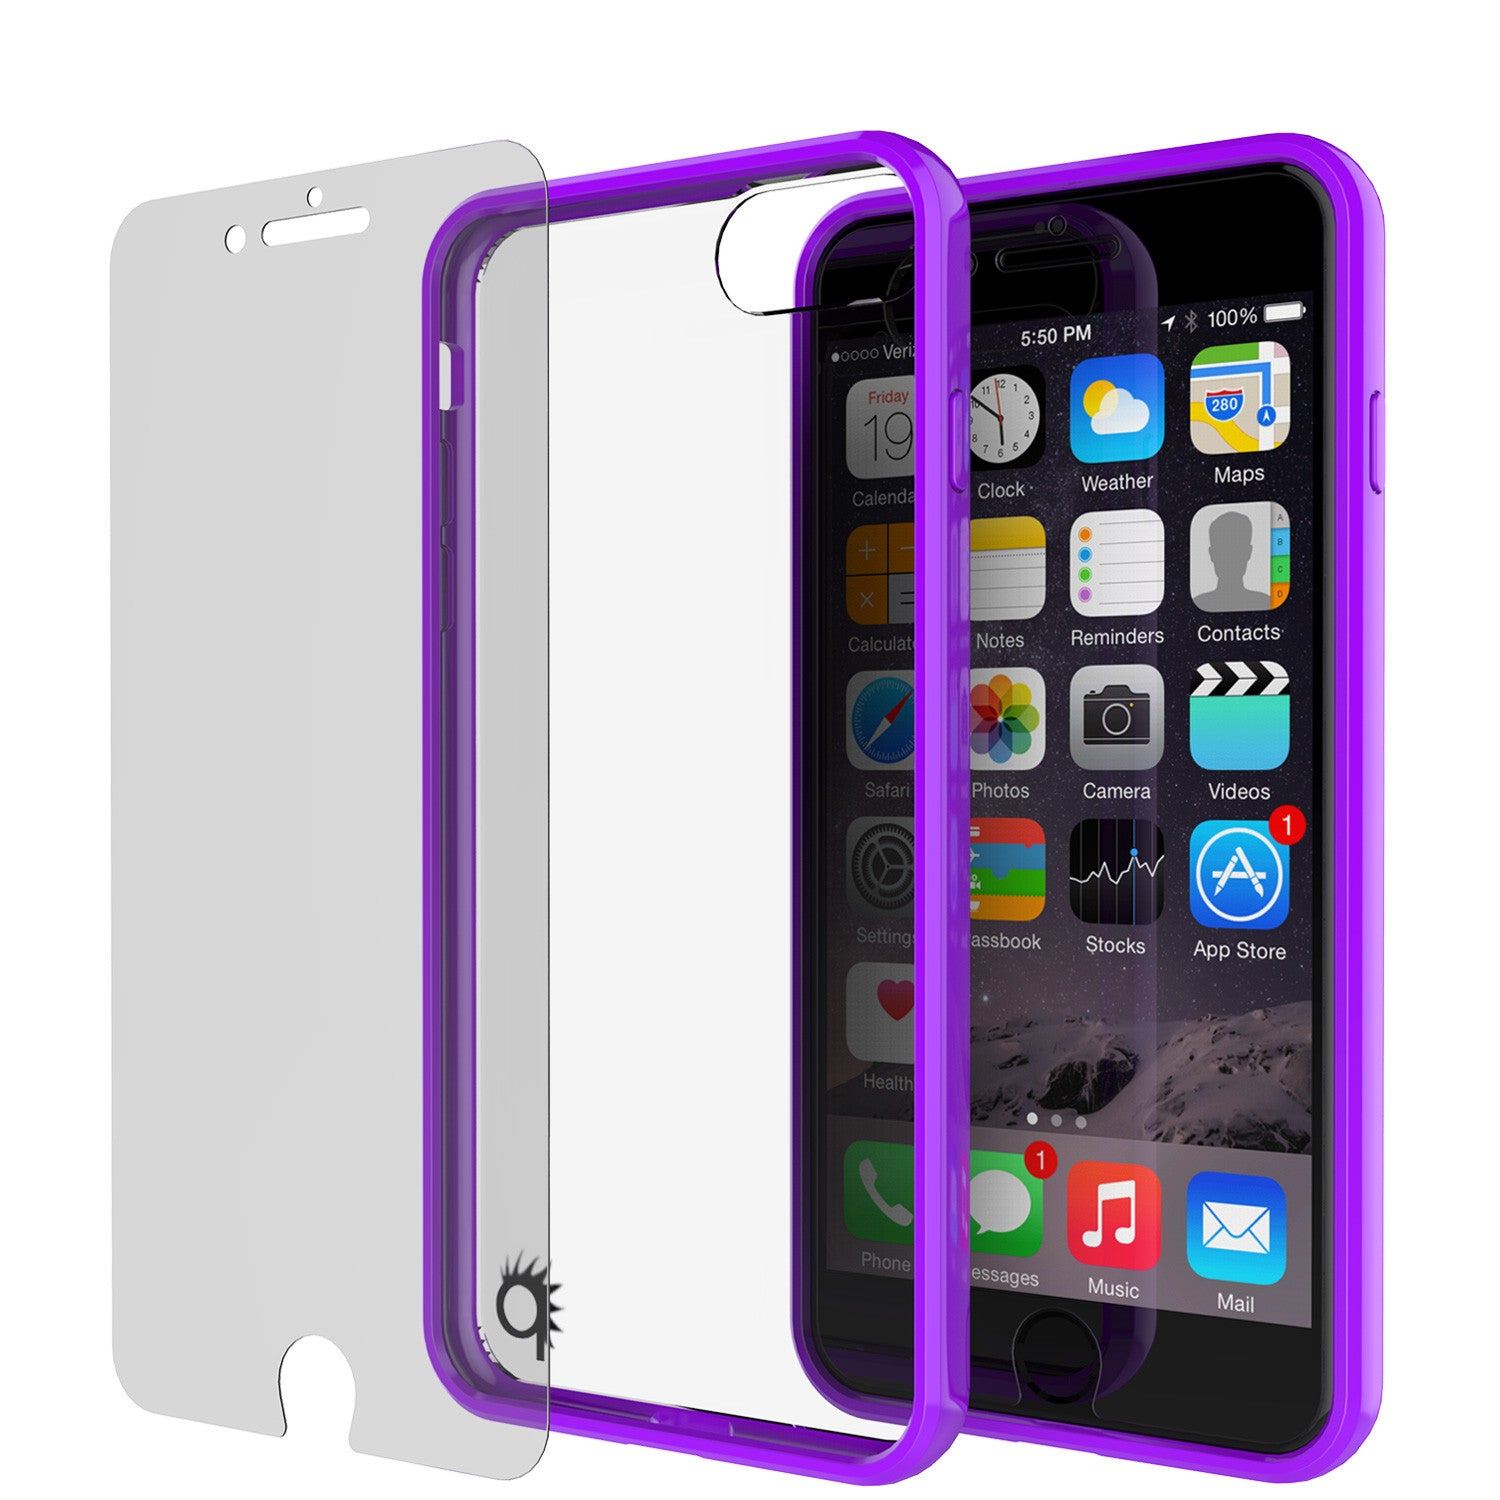 iPhone 7 Case Punkcase® LUCID 2.0 Purple Series w/ PUNK SHIELD Screen Protector | Ultra Fit